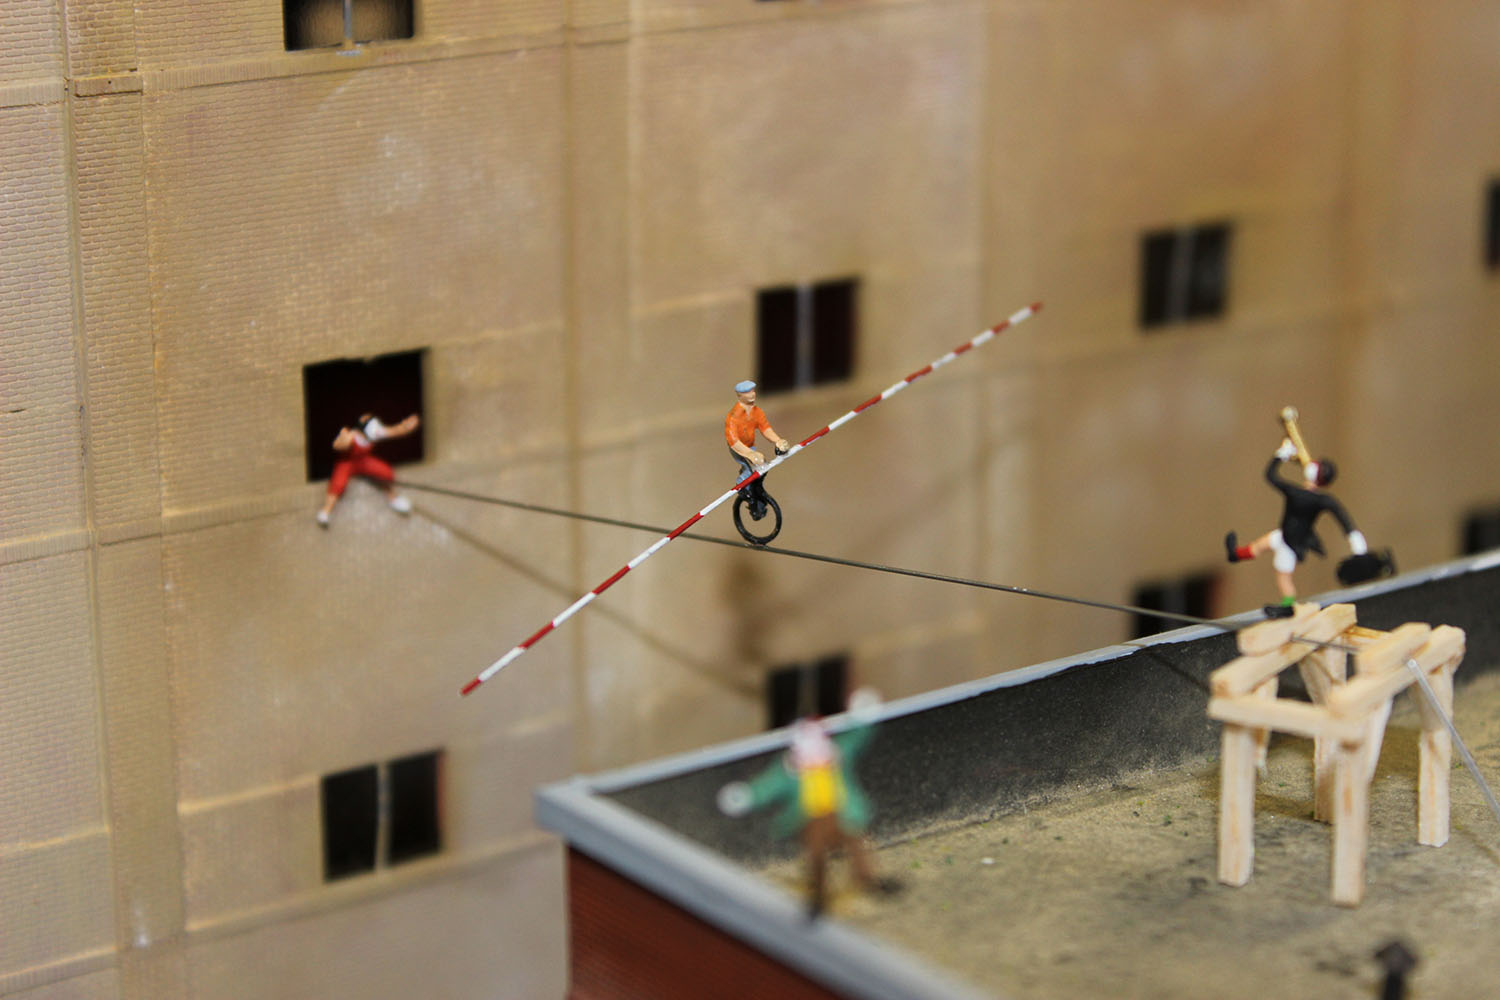 Tight rope cyclicst in Tupelo Honey Café Johnson City model train.